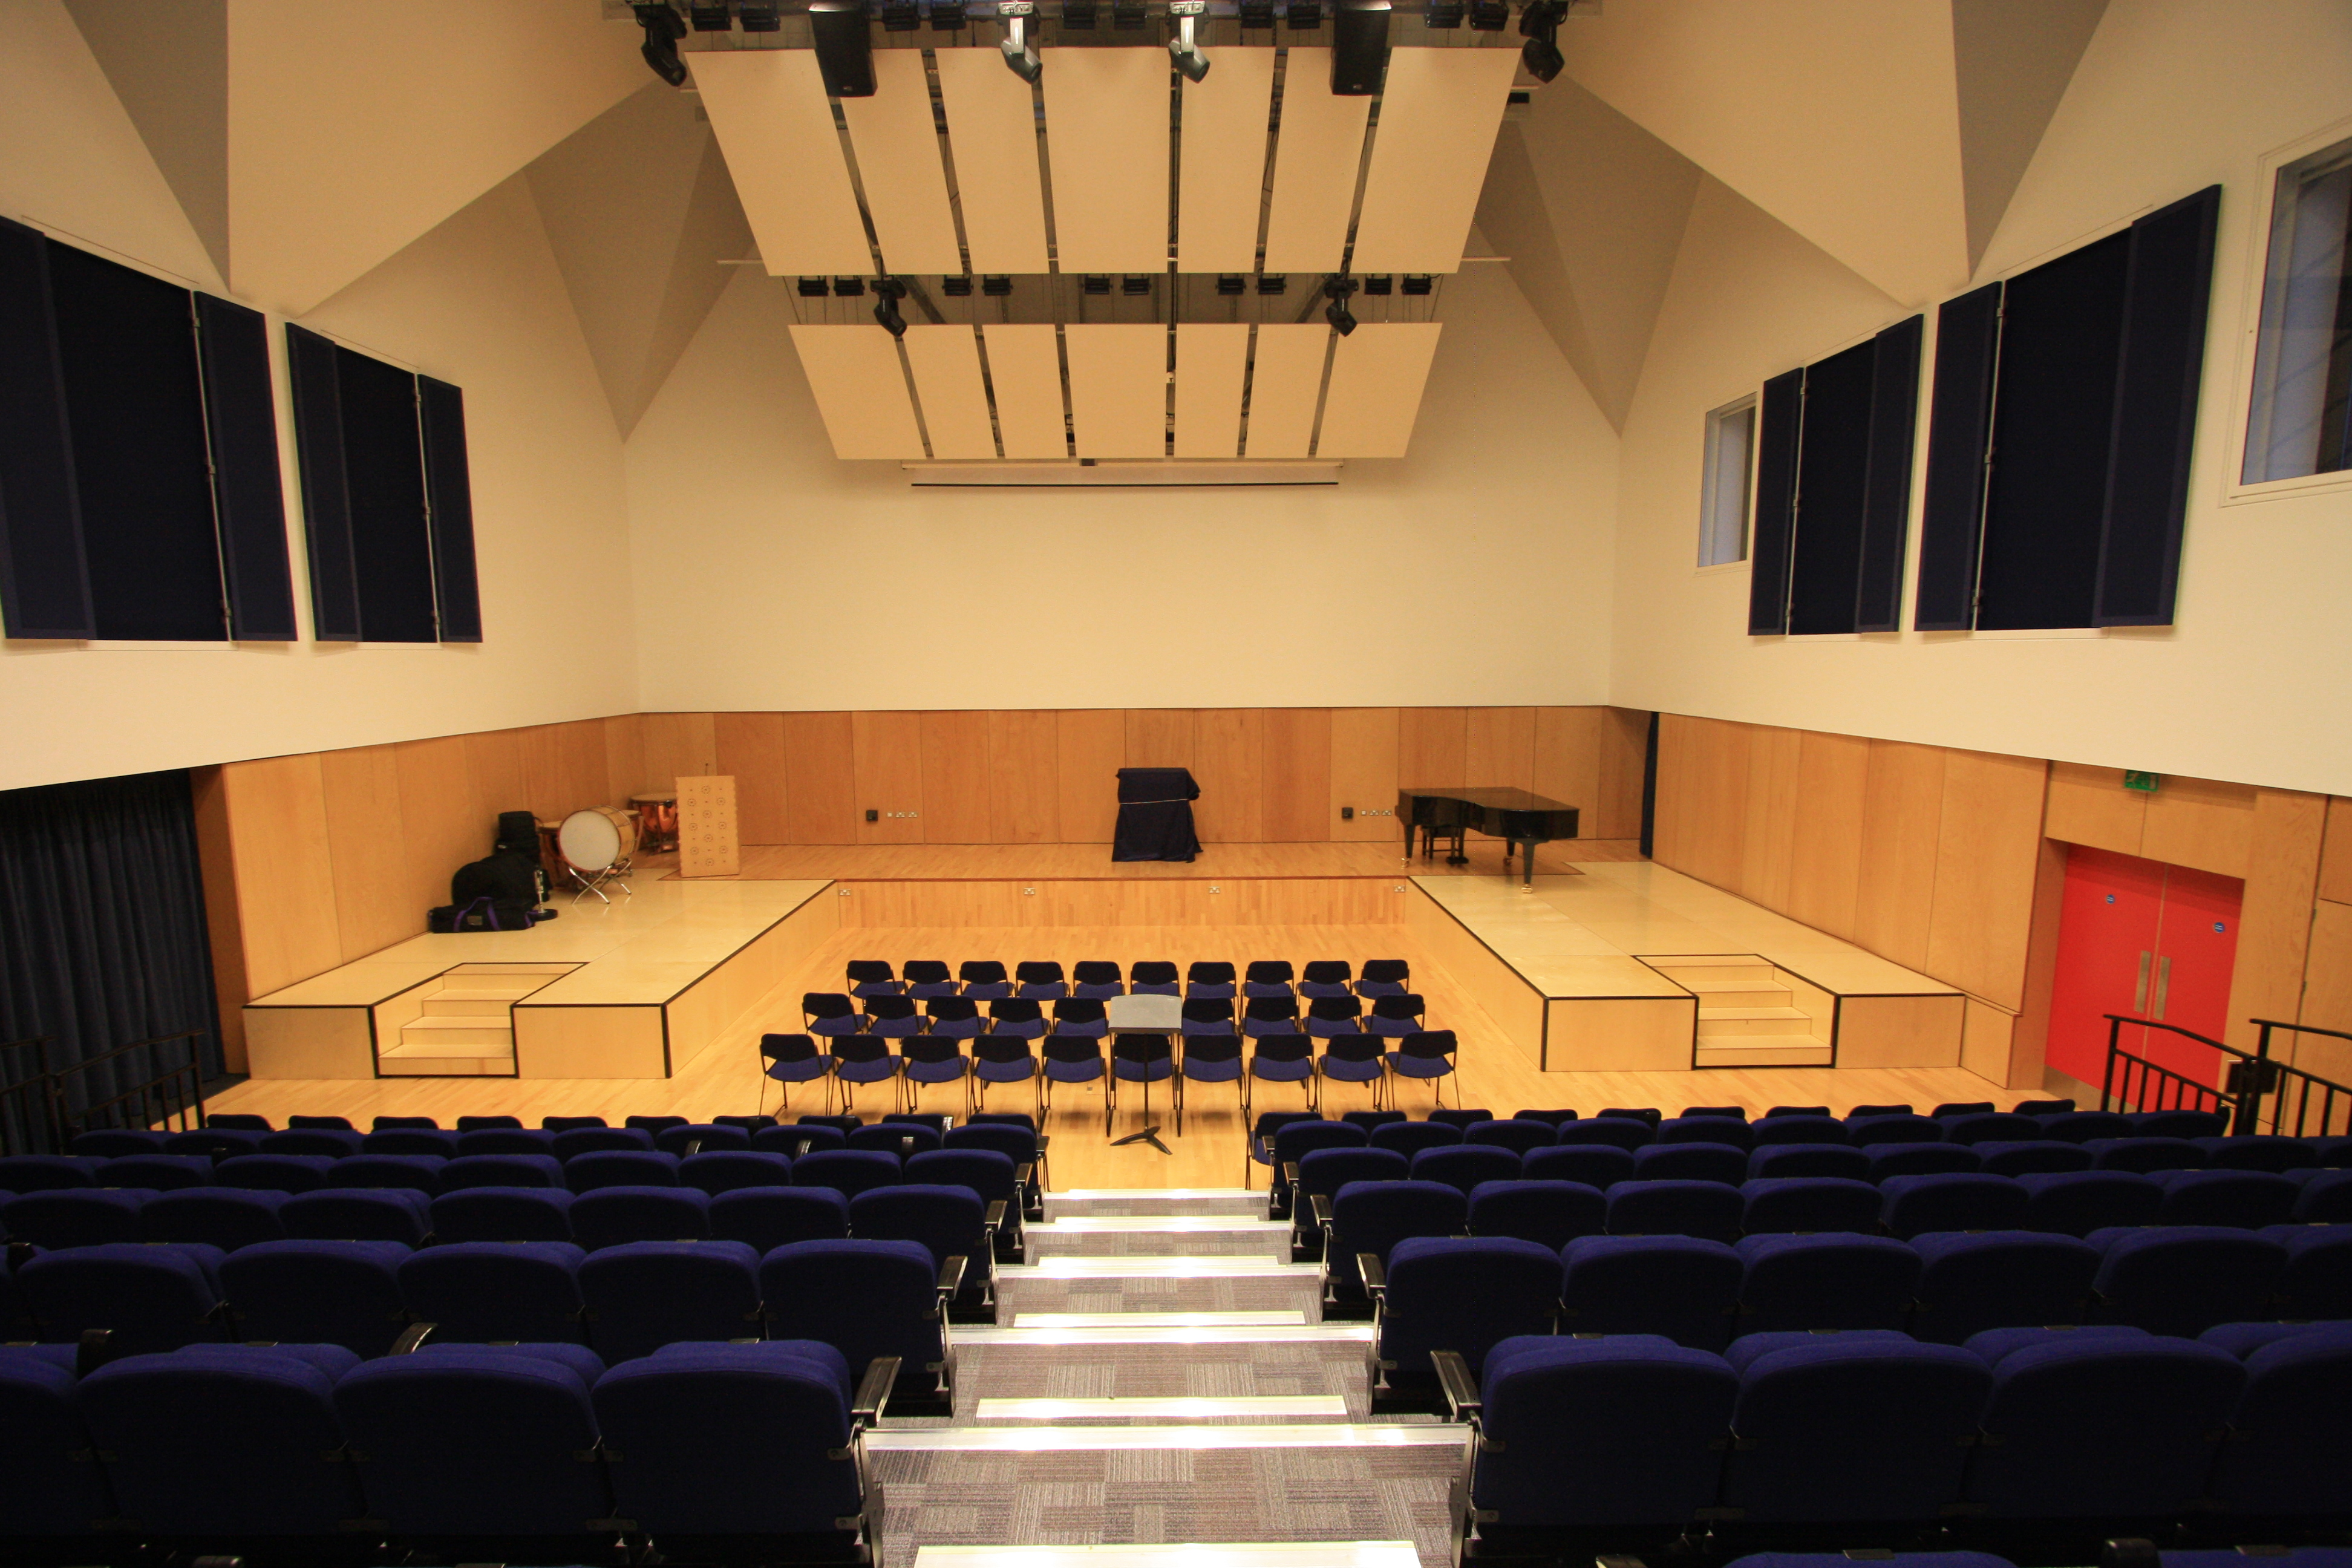 brentwood school stage systems. Black Bedroom Furniture Sets. Home Design Ideas